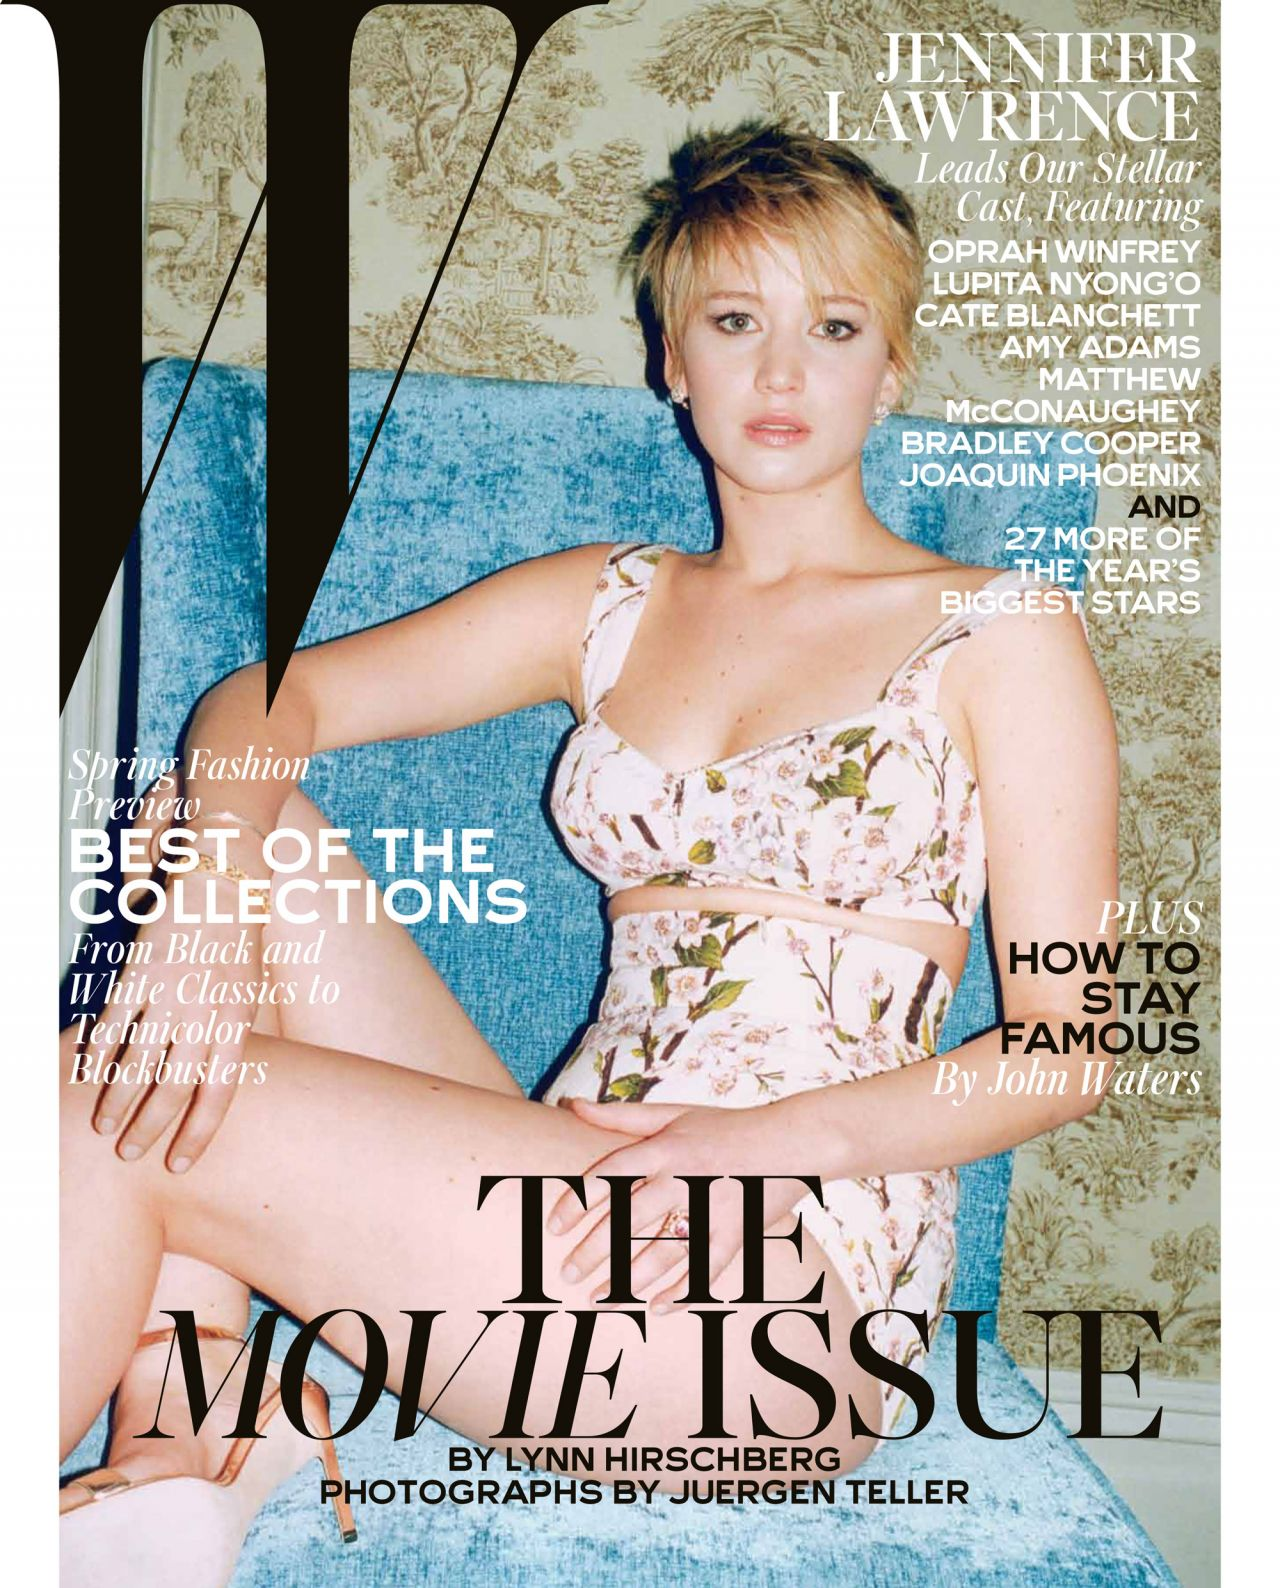 Jennifer Lawrence - W Magazine - February 2014 Issue